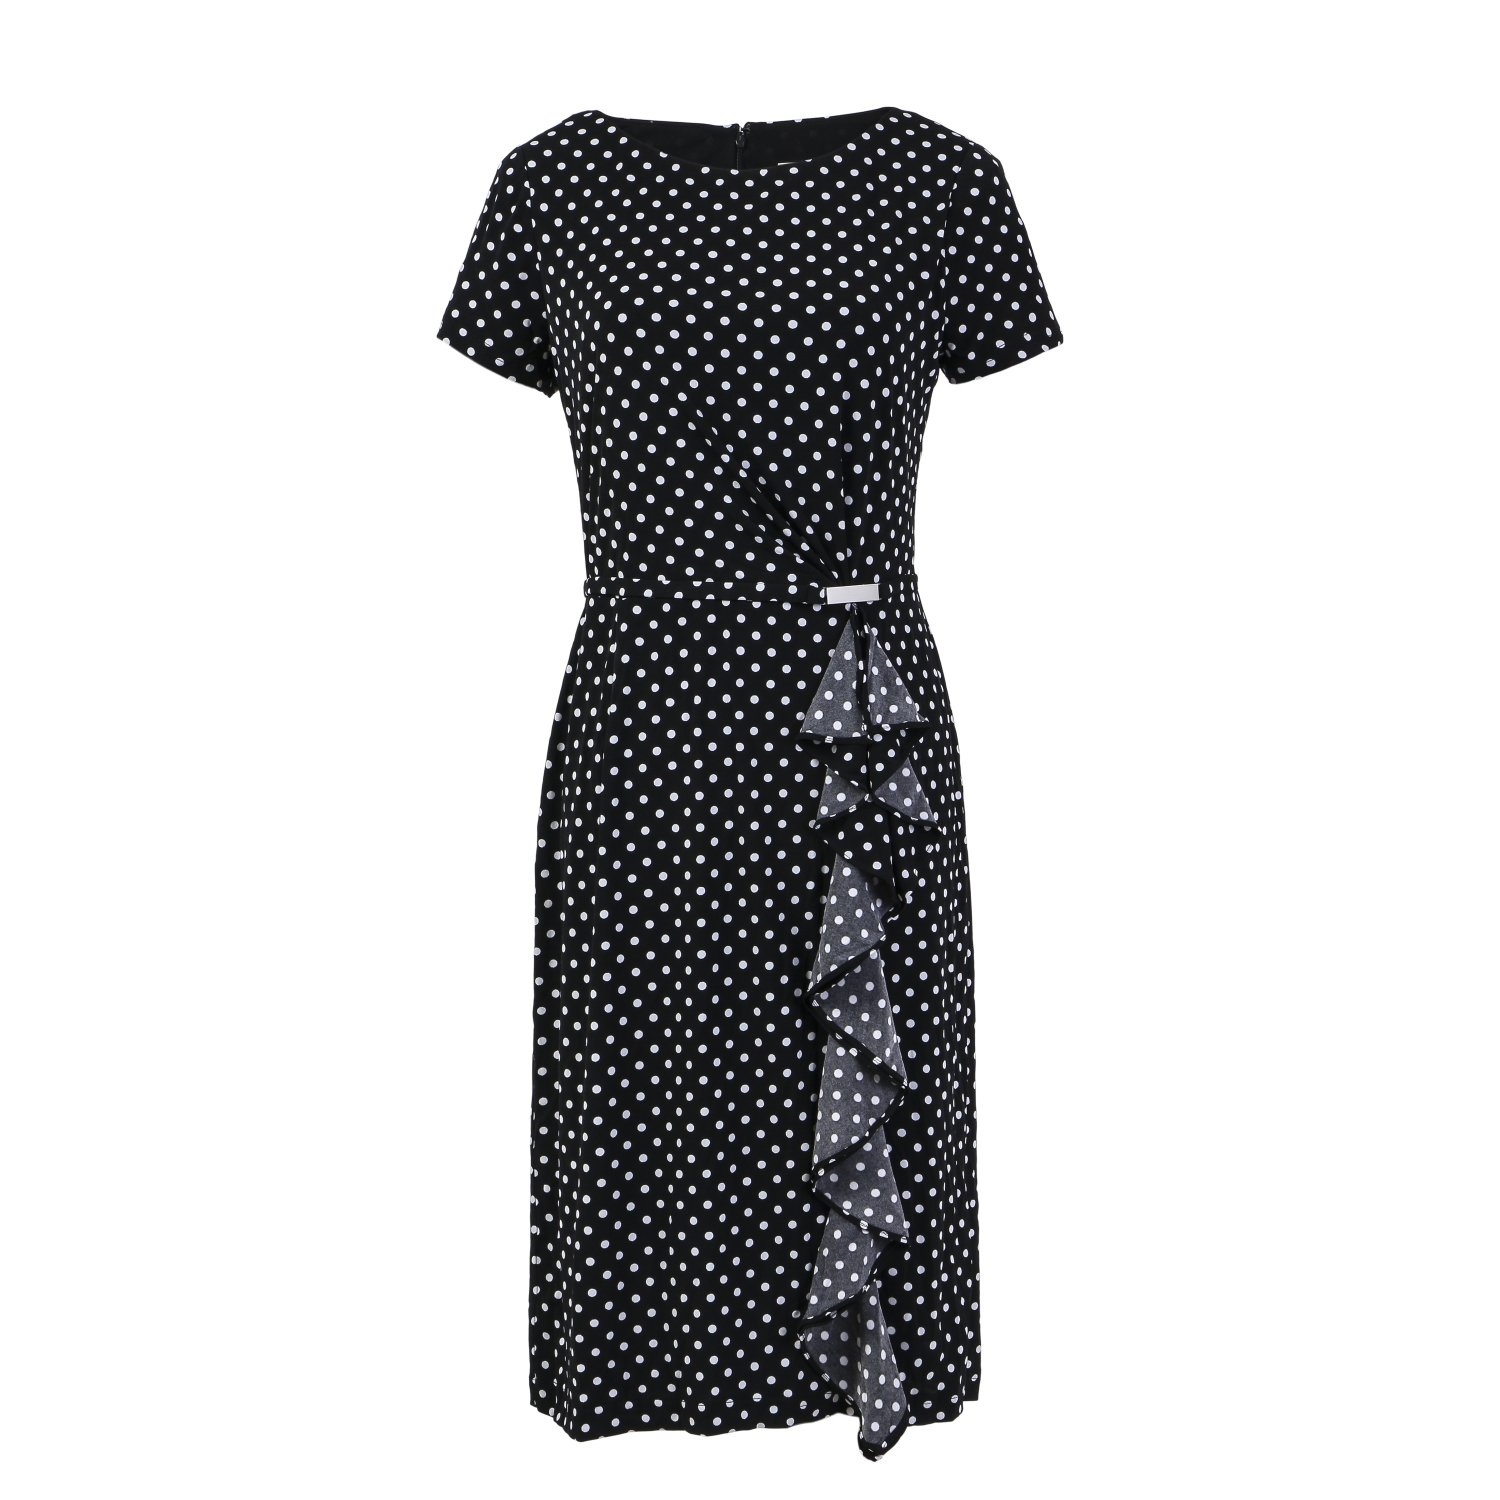 2 FOR 1 CLOTHES Printed knit jersey dress